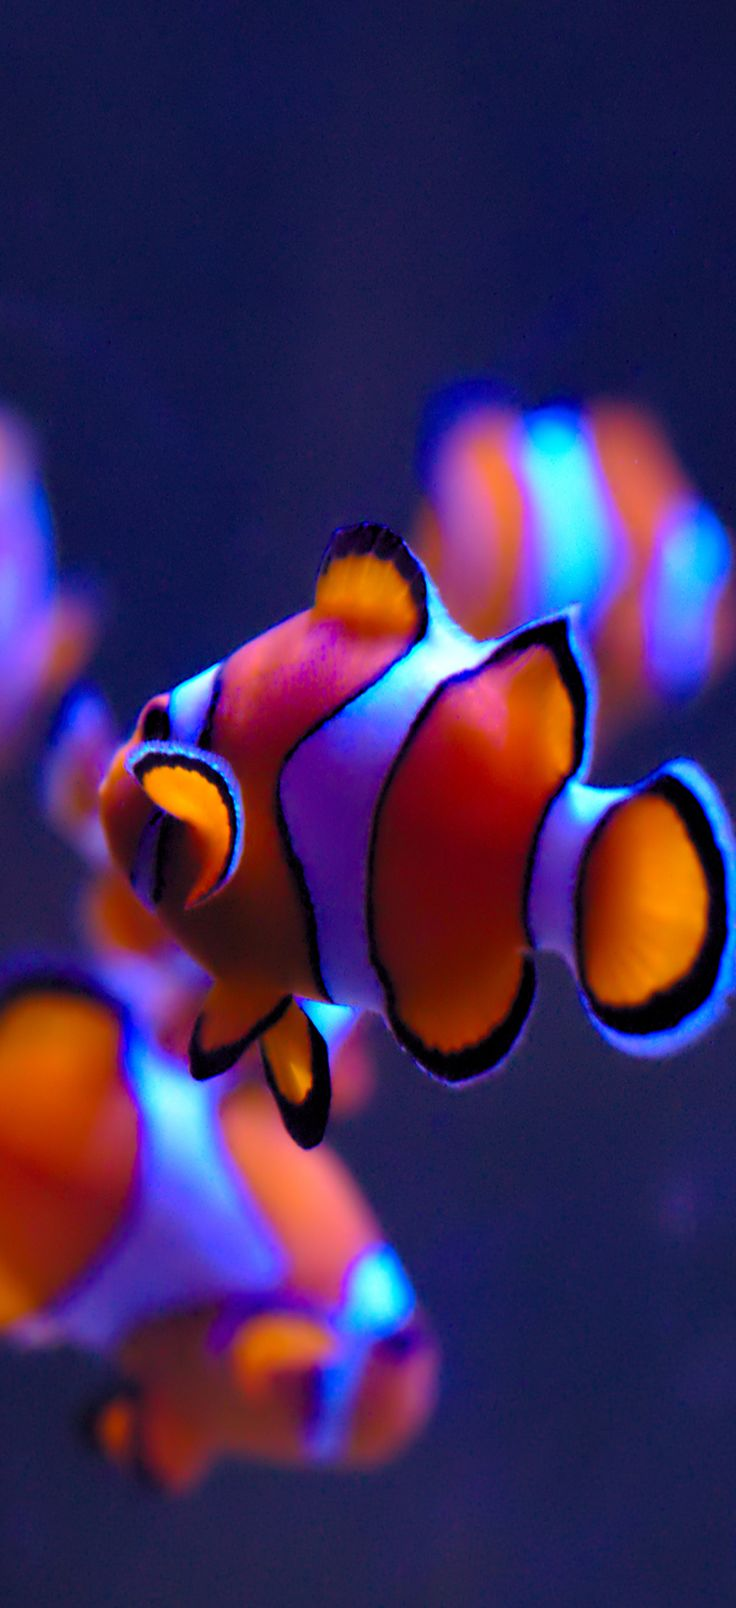 Ios 11 Clownfish Orange Blue Water Apple Wallpaper Iphone X Iphone 8 Clean Beauty Colour Ios Minim Clown Fish Fish Wallpaper Iphone Fish Wallpaper